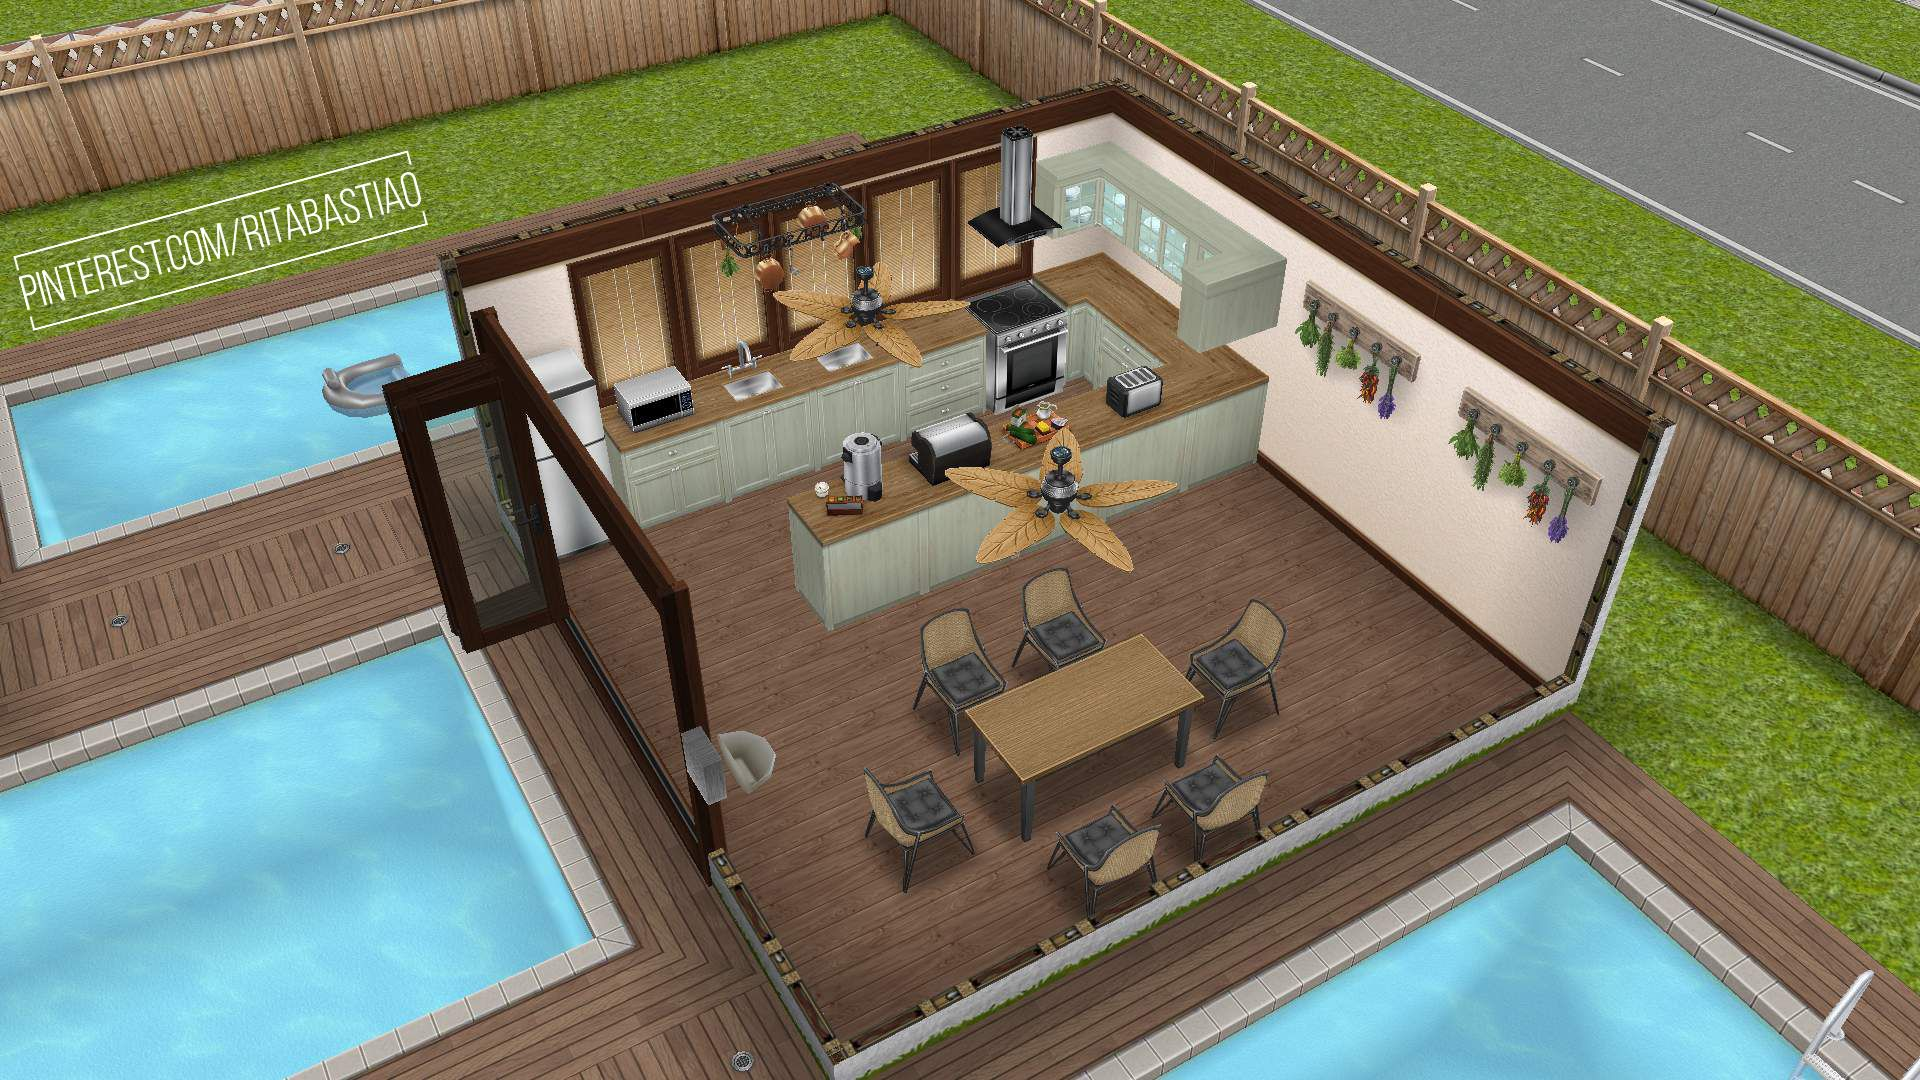 Verdieping Sims Freeplay Rita Bastião You Saved To House Of Three Houses 2 In Sims